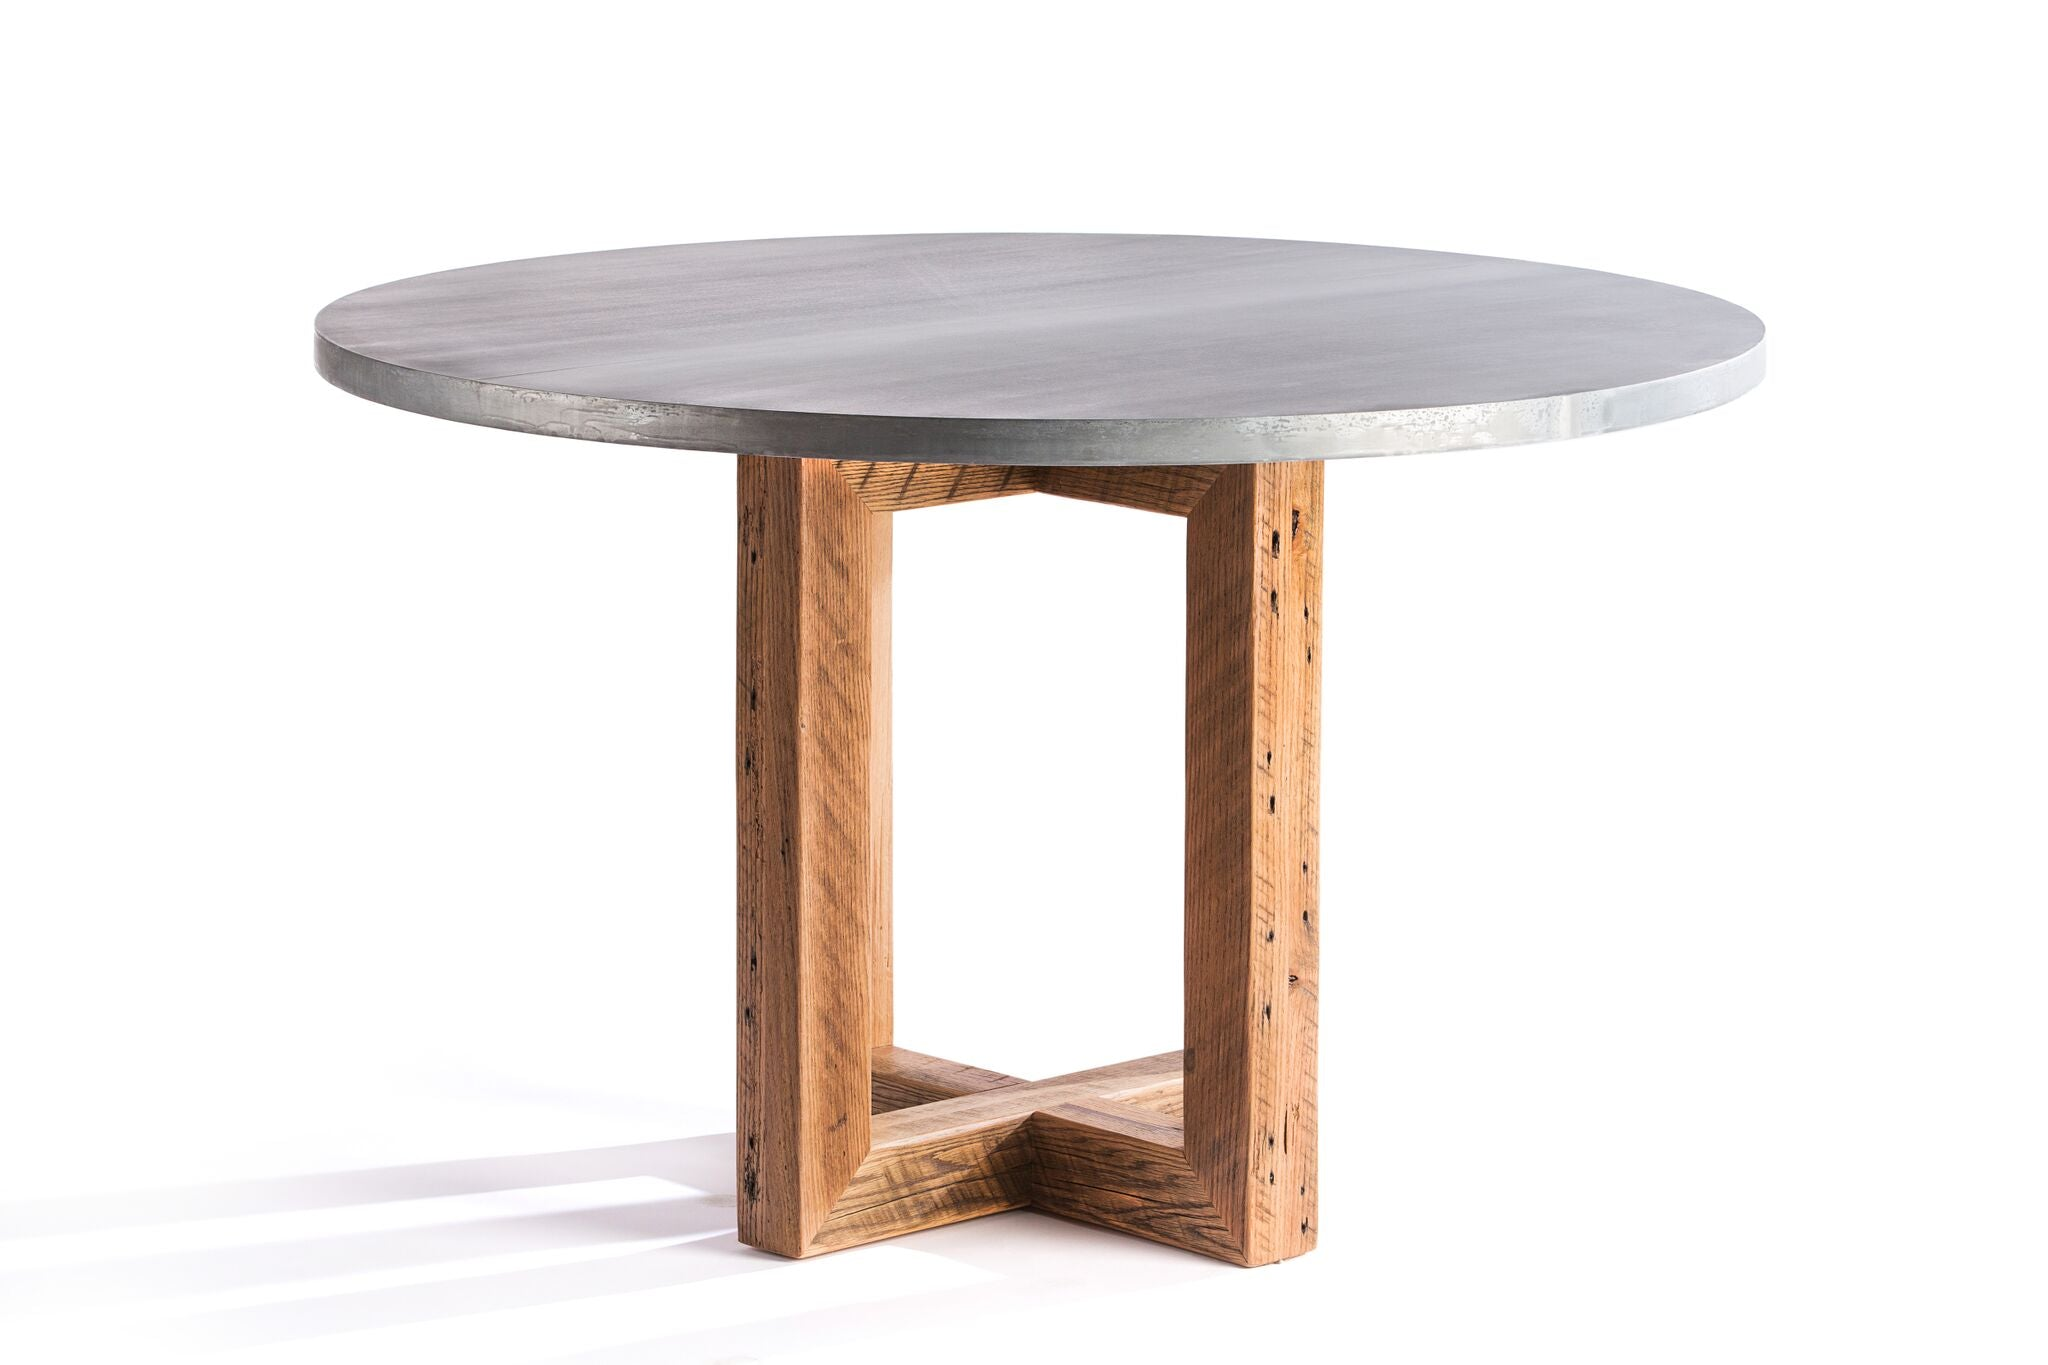 Zinc Round Tables | Winston Table | CLASSIC | Americana on Reclaimed Oak | 42"